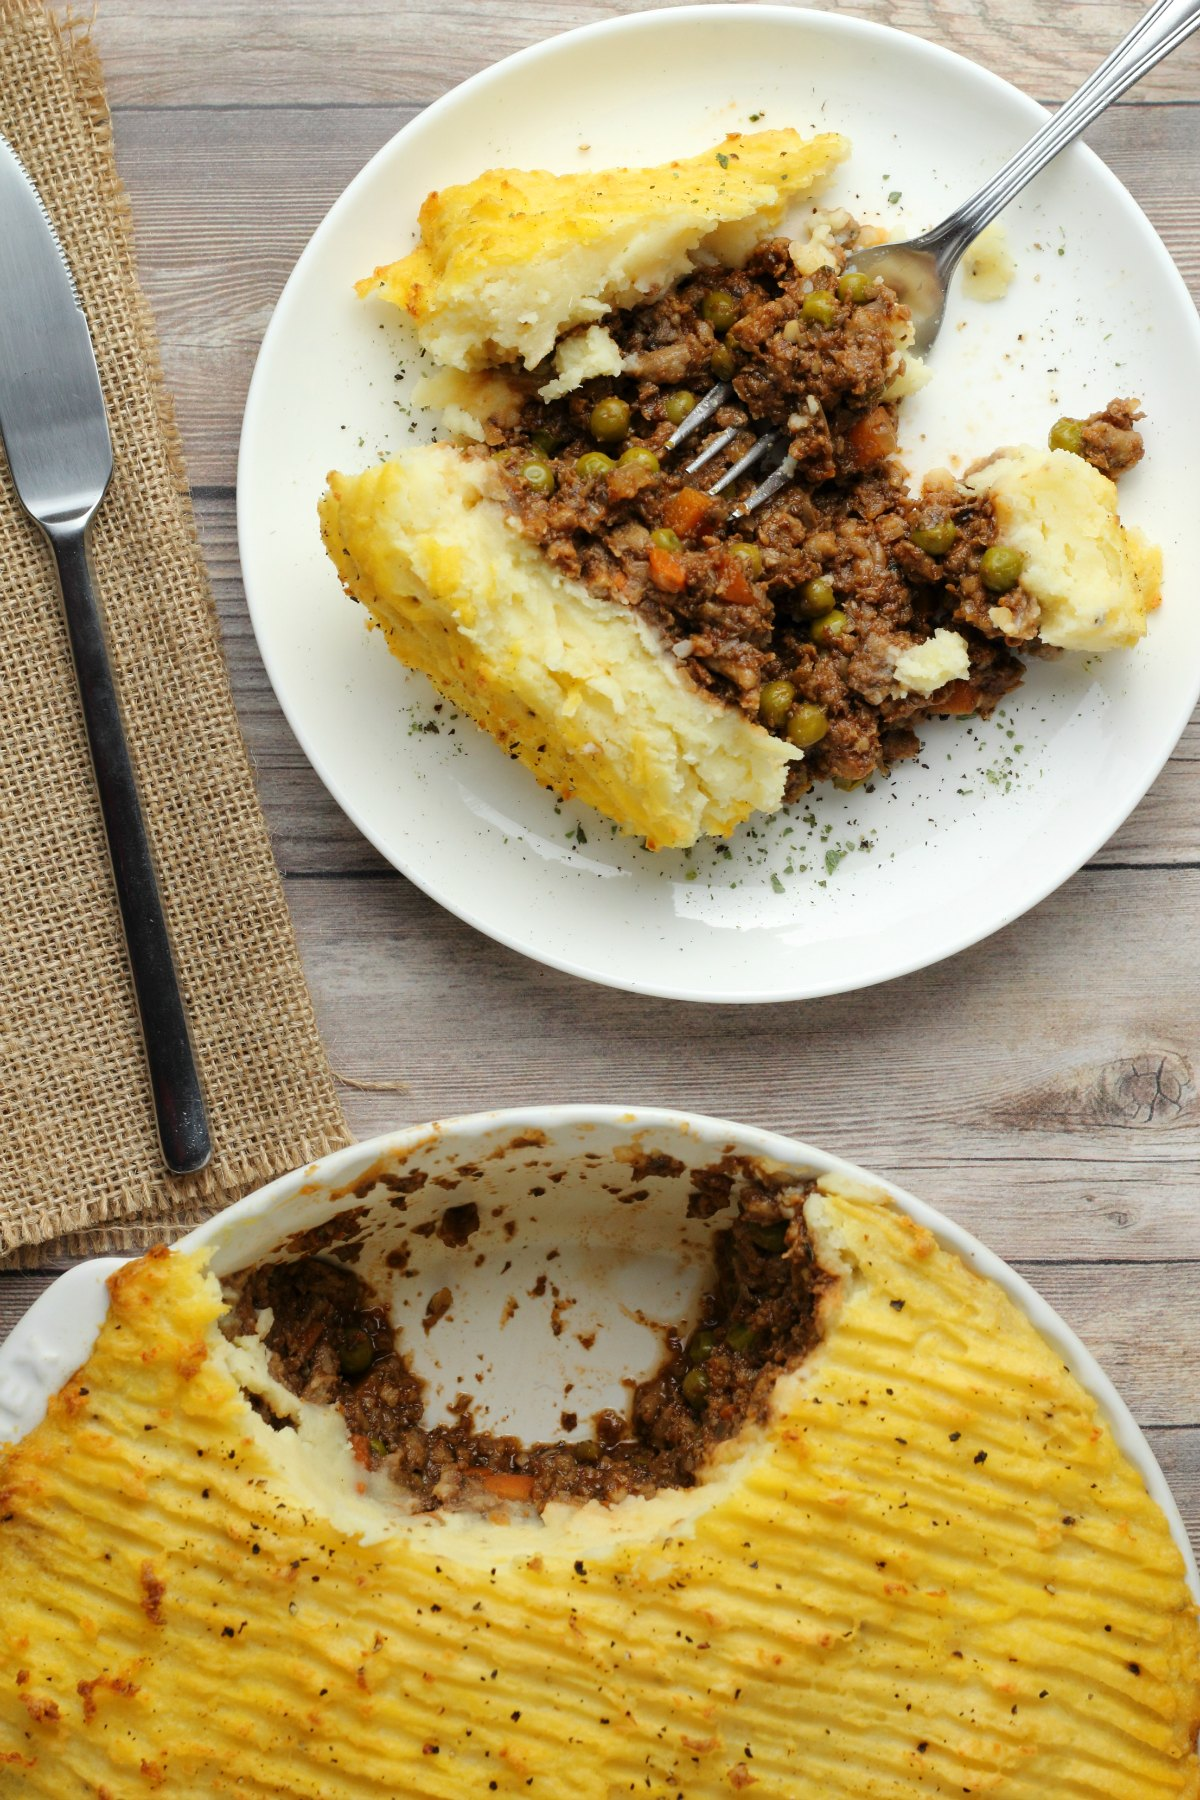 A slice of vegan shepherd's pie on a white plate with a fork.